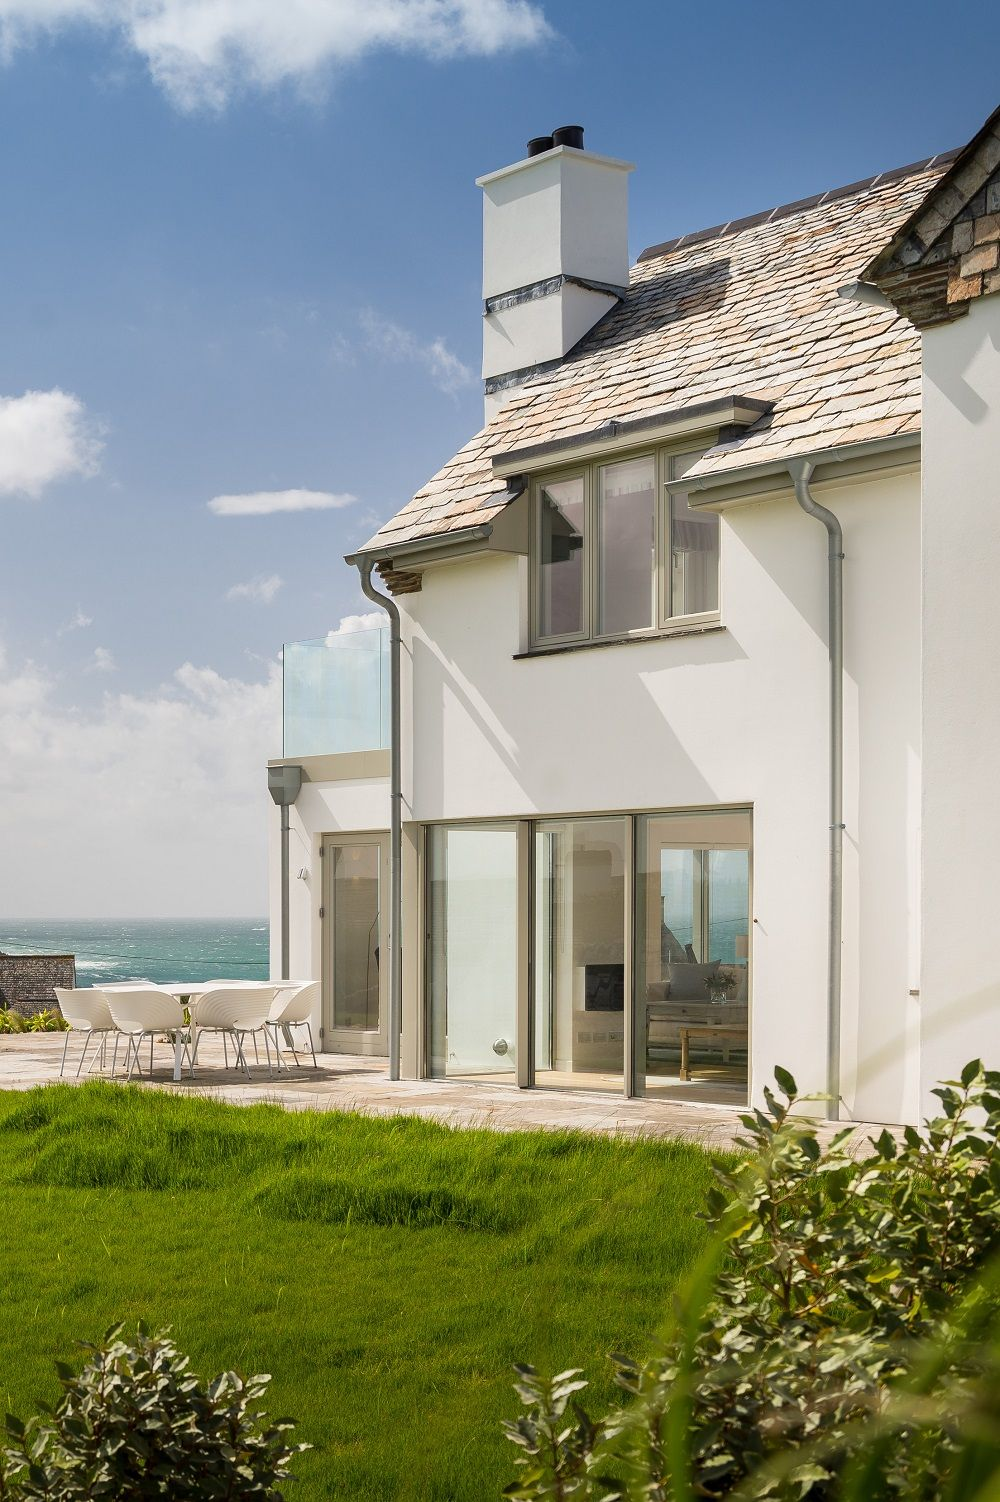 Sea Breezes Luxury Self Catering Daymer Bay Cornwall In 2020 Large Holiday Homes Sunken Patio Elegant Homes